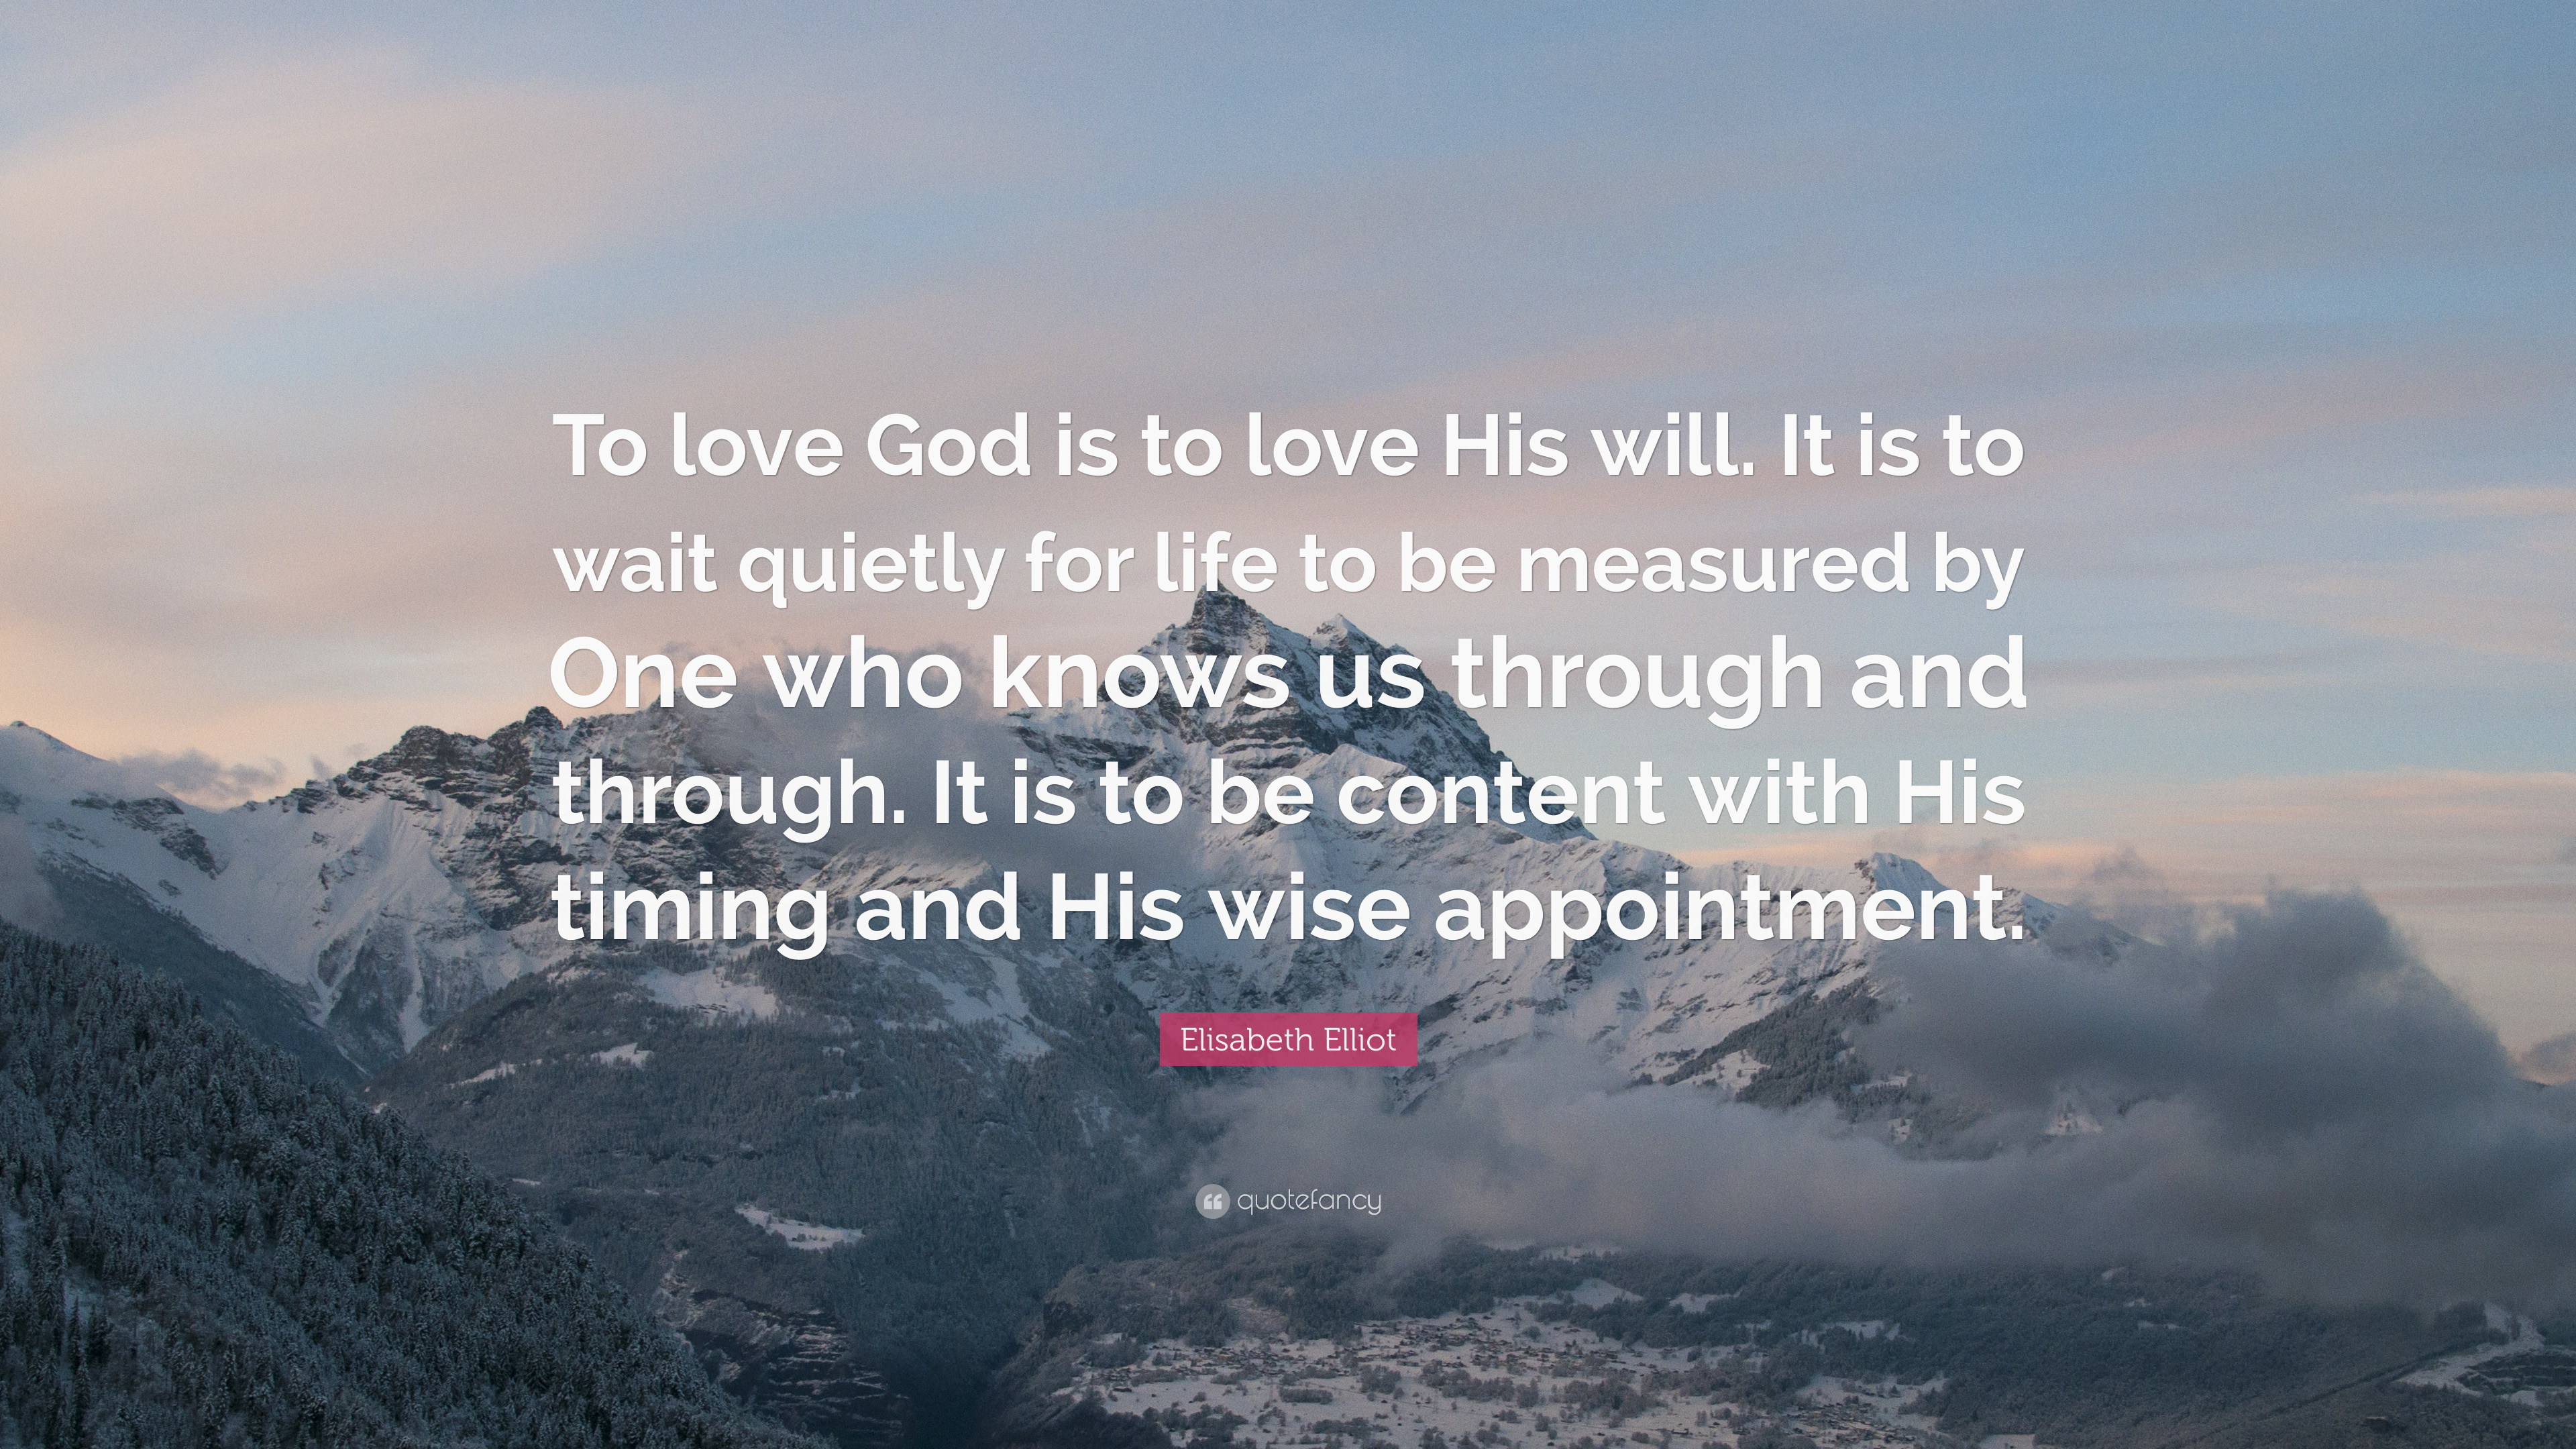 Beautiful Wallpaper Love God - 2450484-Elisabeth-Elliot-Quote-To-love-God-is-to-love-His-will-It-is-to  Collection_566476.jpg